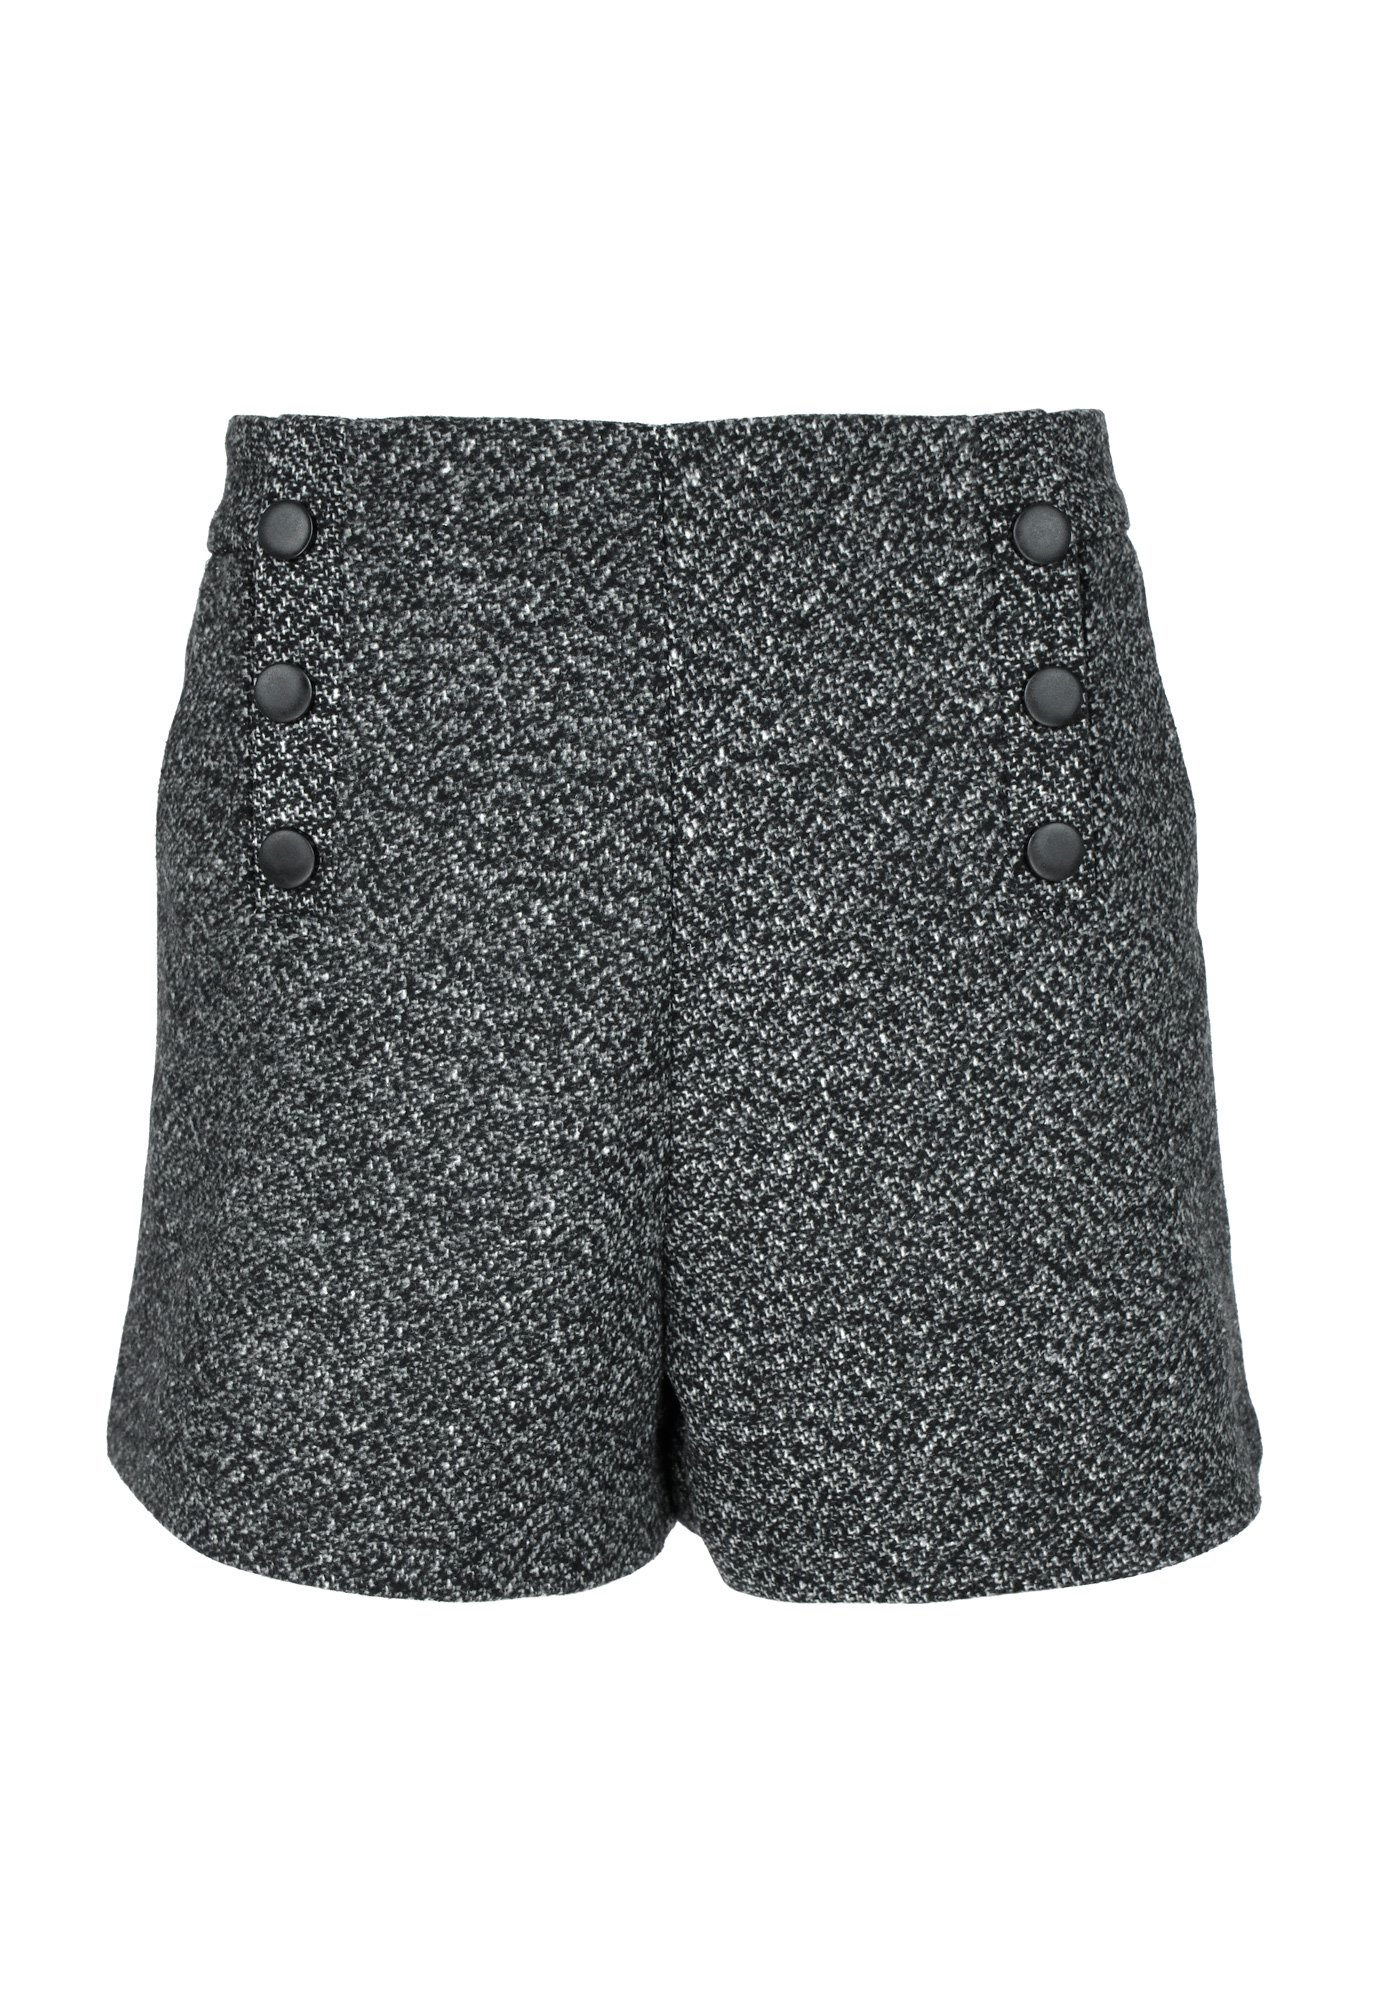 Winter Shorts